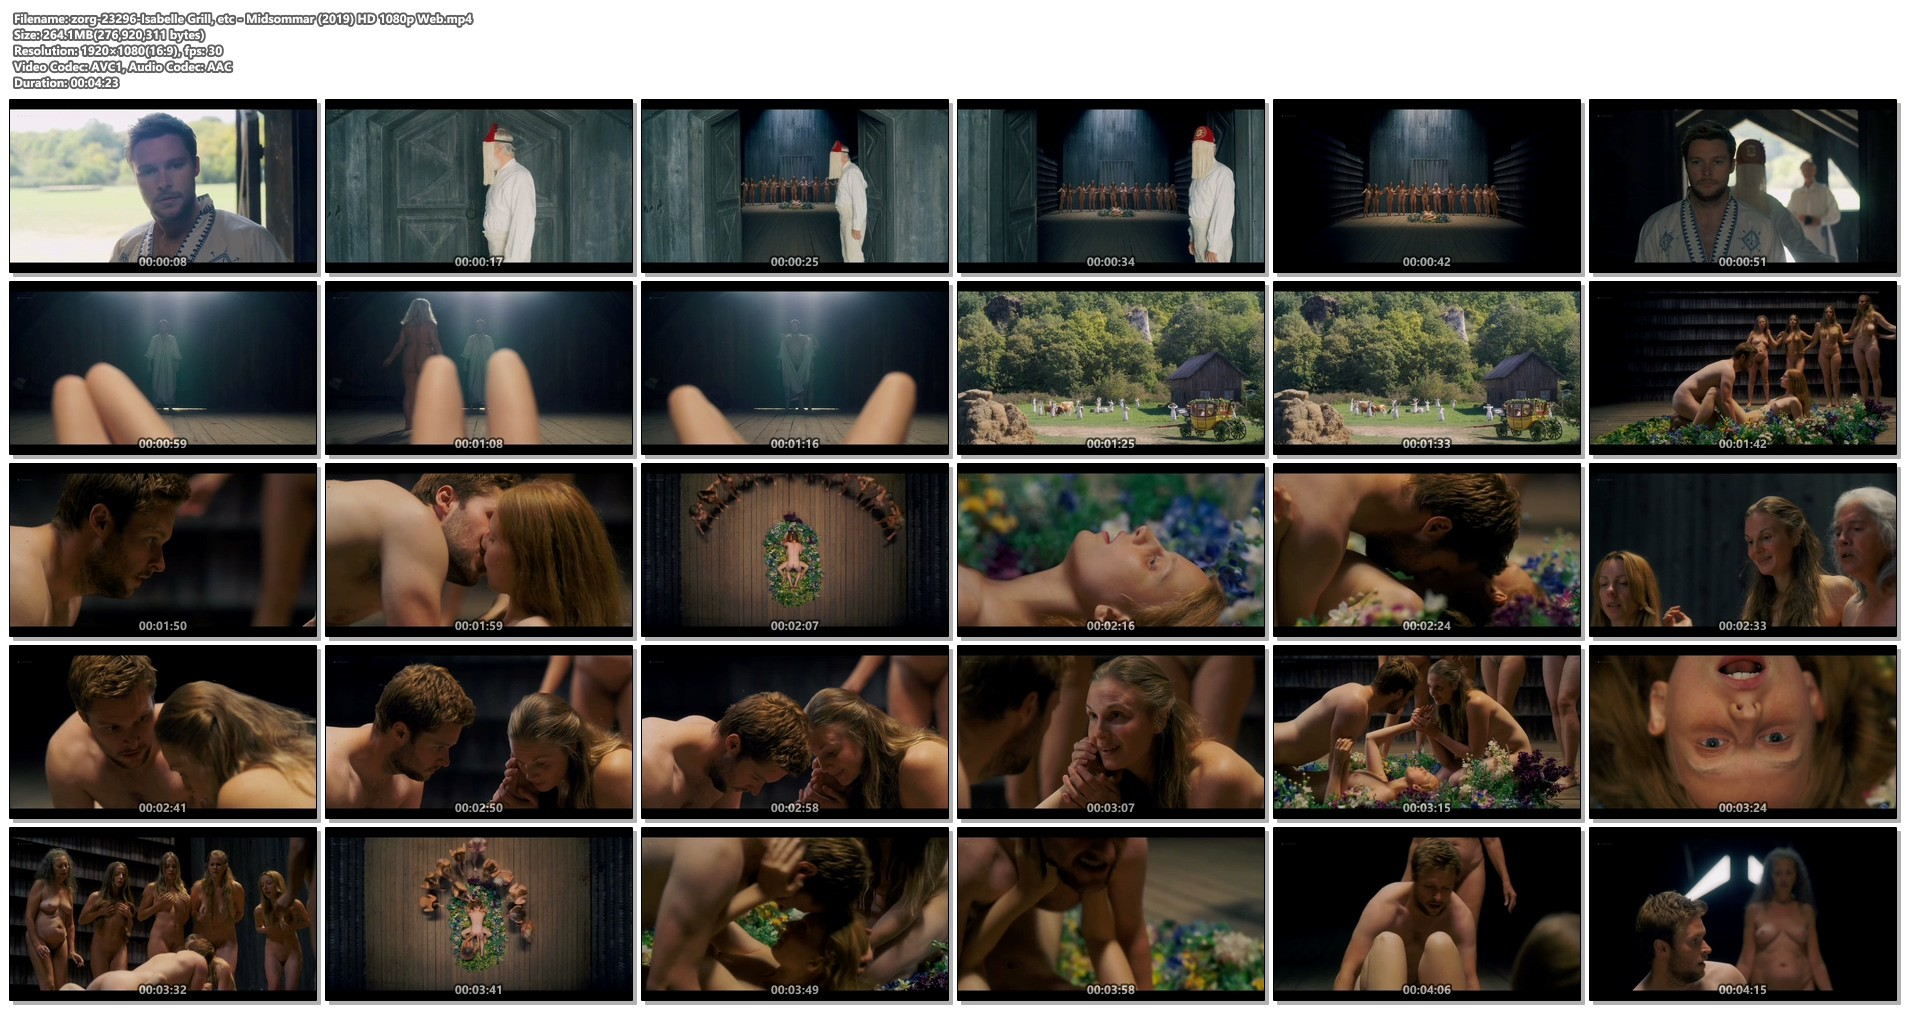 Isabelle Grill nude sex others nude full frontal - Midsommar (2019) HD 1080p Web (1)